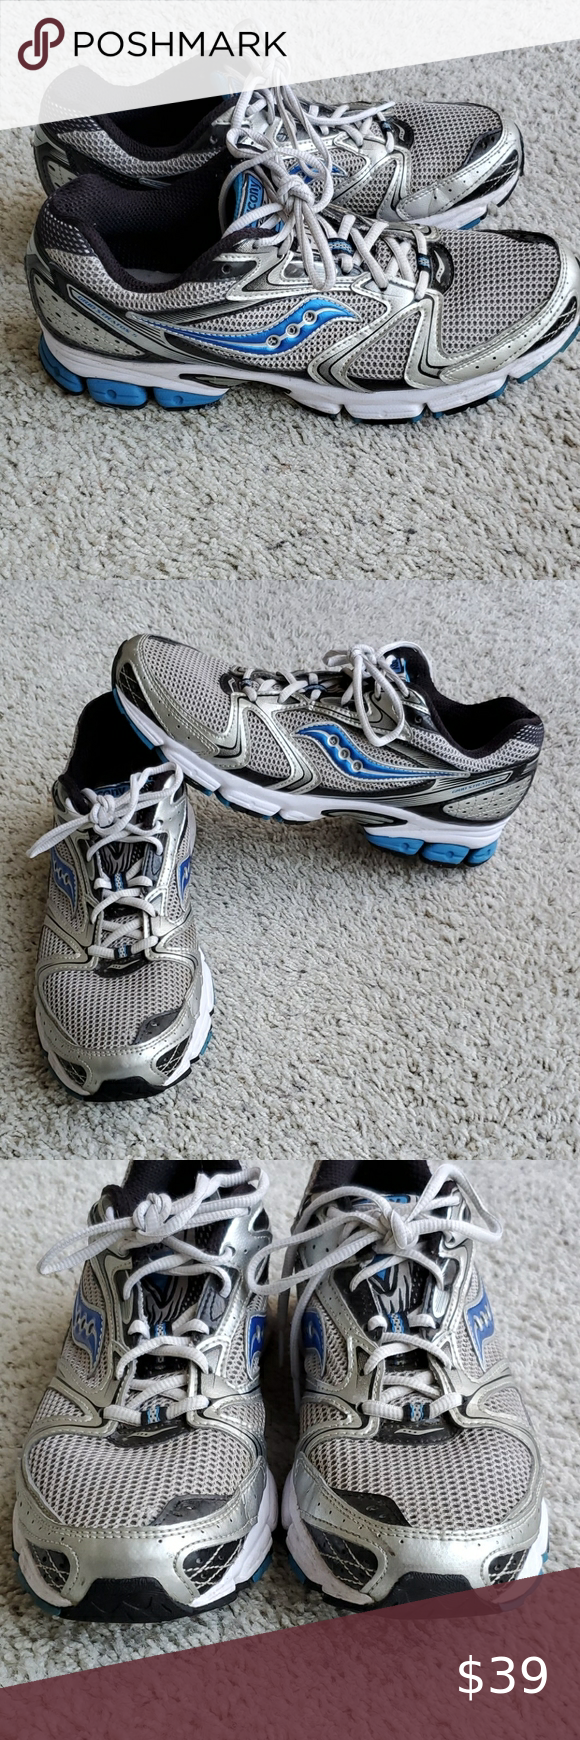 Grid Stratos 5 Running Shoes Sz 11